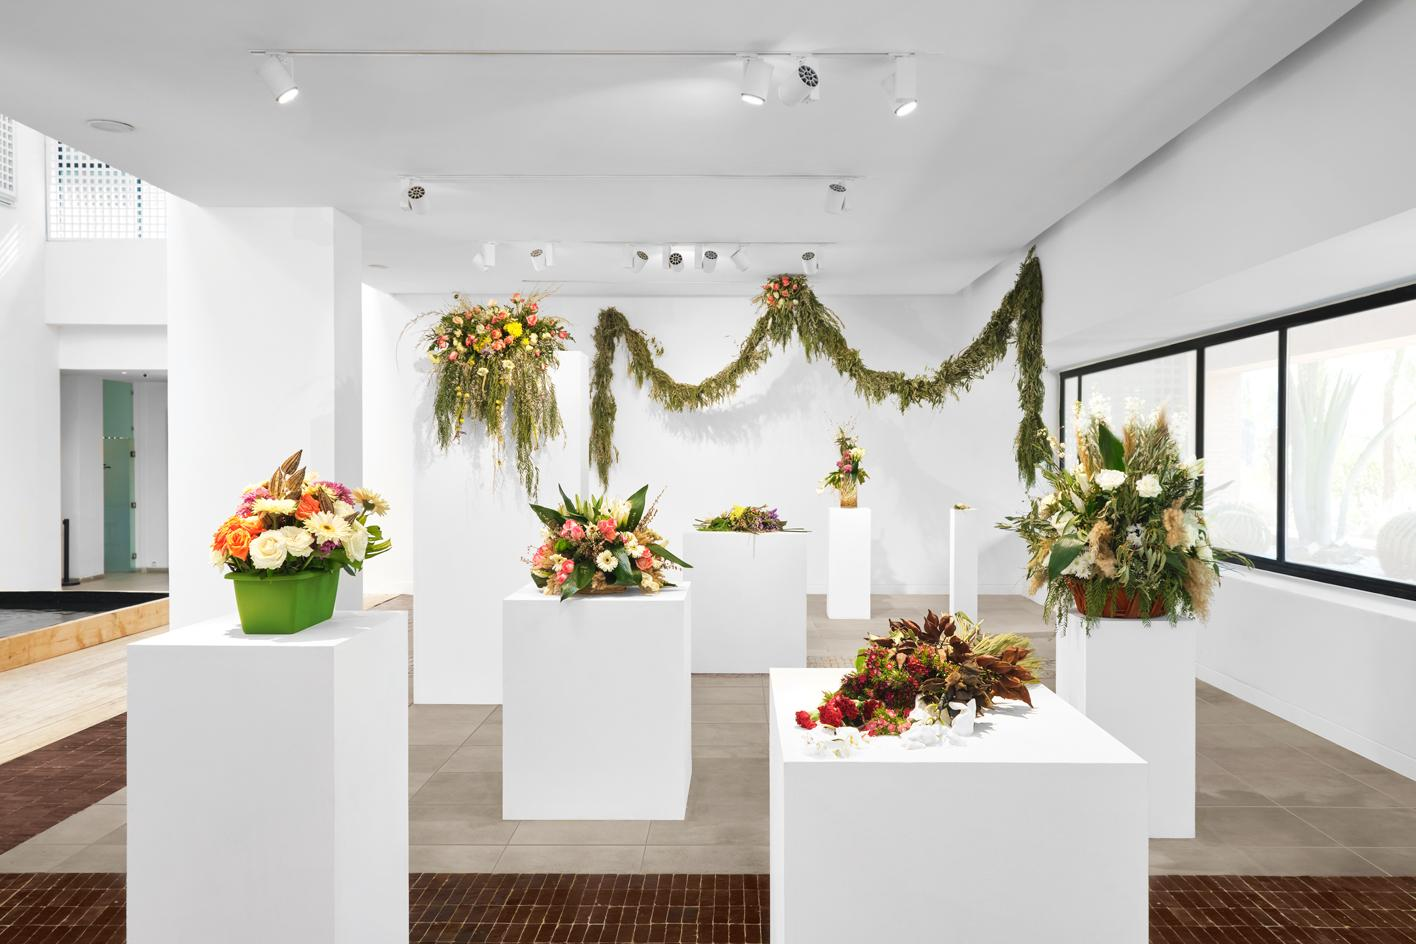 Installation view of Have you seen a horizon lately